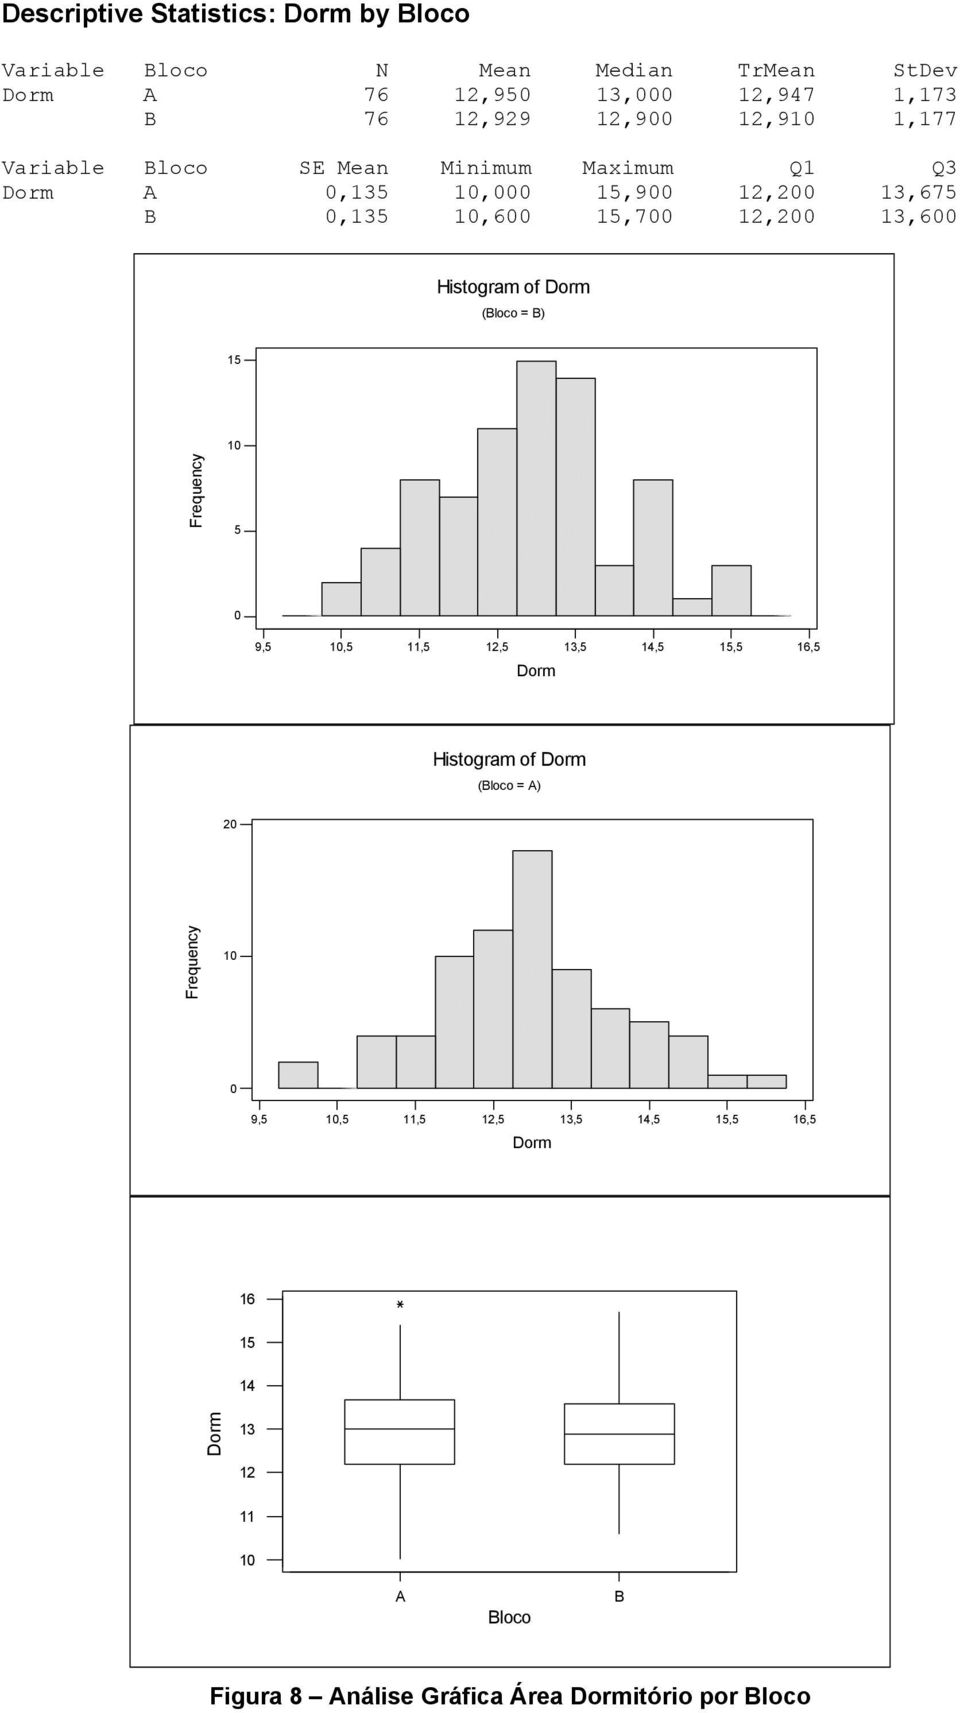 B,13,6 1,7 12, 13,6 Histogram of Dorm (Bloco = B) 1 9,, 11, 12, 13, 14, 1, 16, Dorm Histogram of Dorm (Bloco